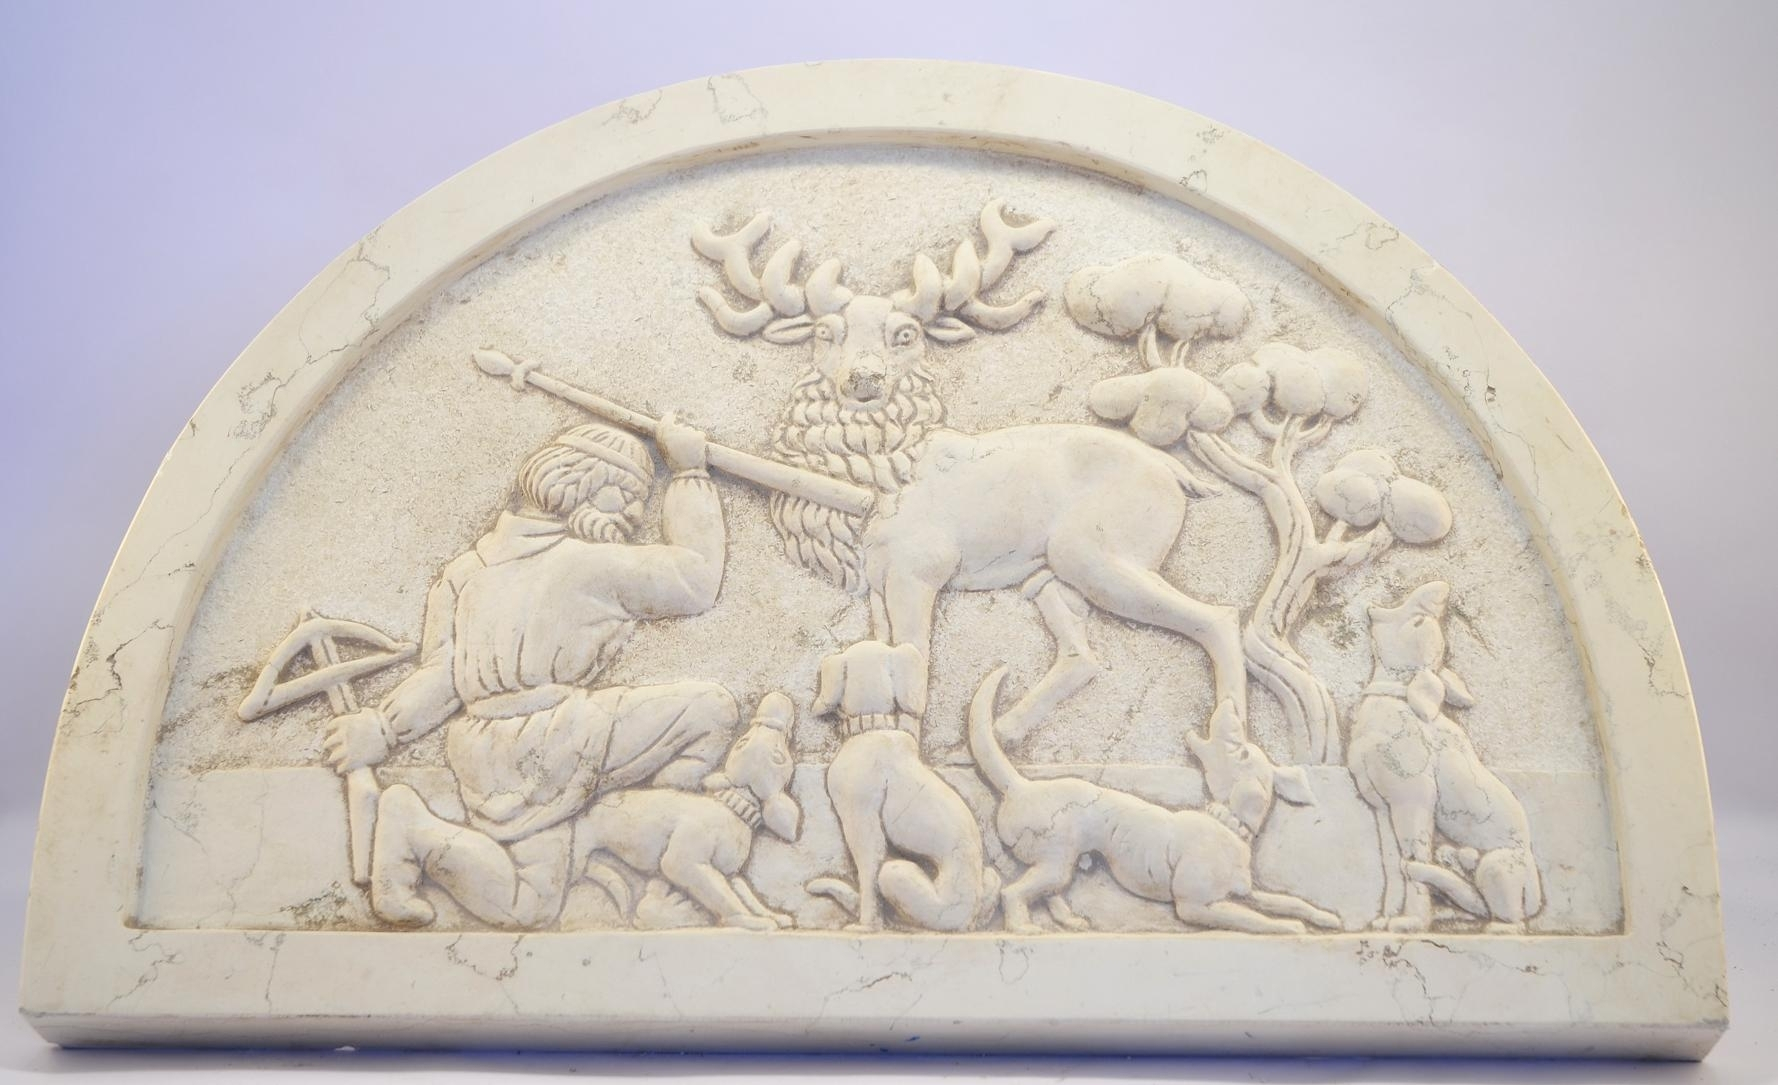 Buy Marble Bas-relief Hunting Scene Hand 17457704 | Italy2Us.com